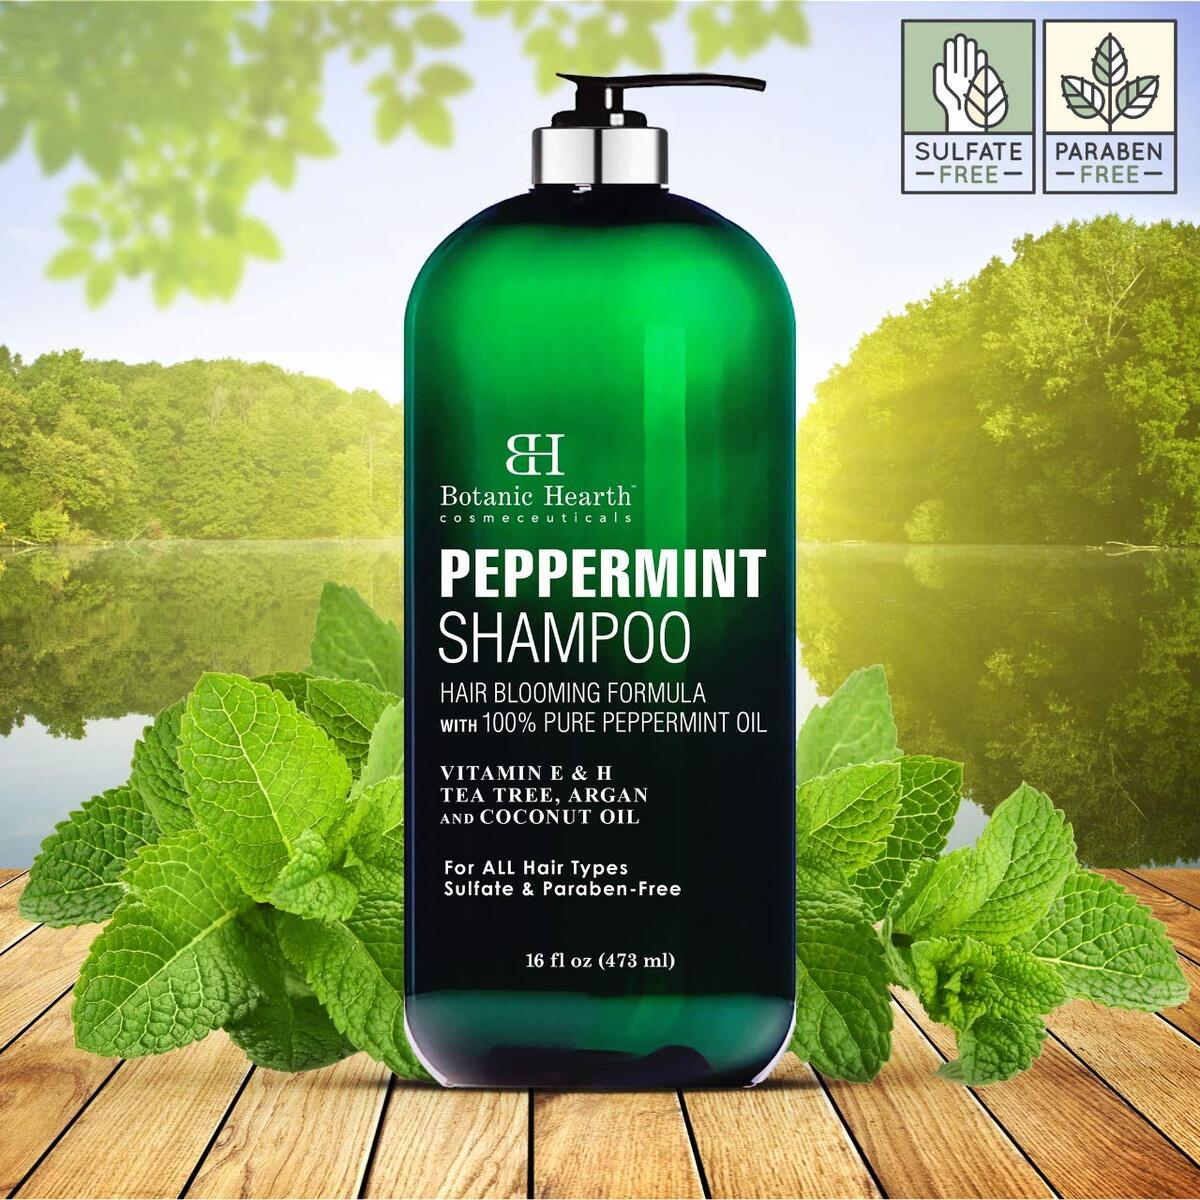 Peppermint Oil Shampoo - Hair Blooming Formula with Keratin for Thinning Hair - Fights Hair Loss, Promotes Hair Growth - Sulfate Free for Men and Women - 16 fl oz